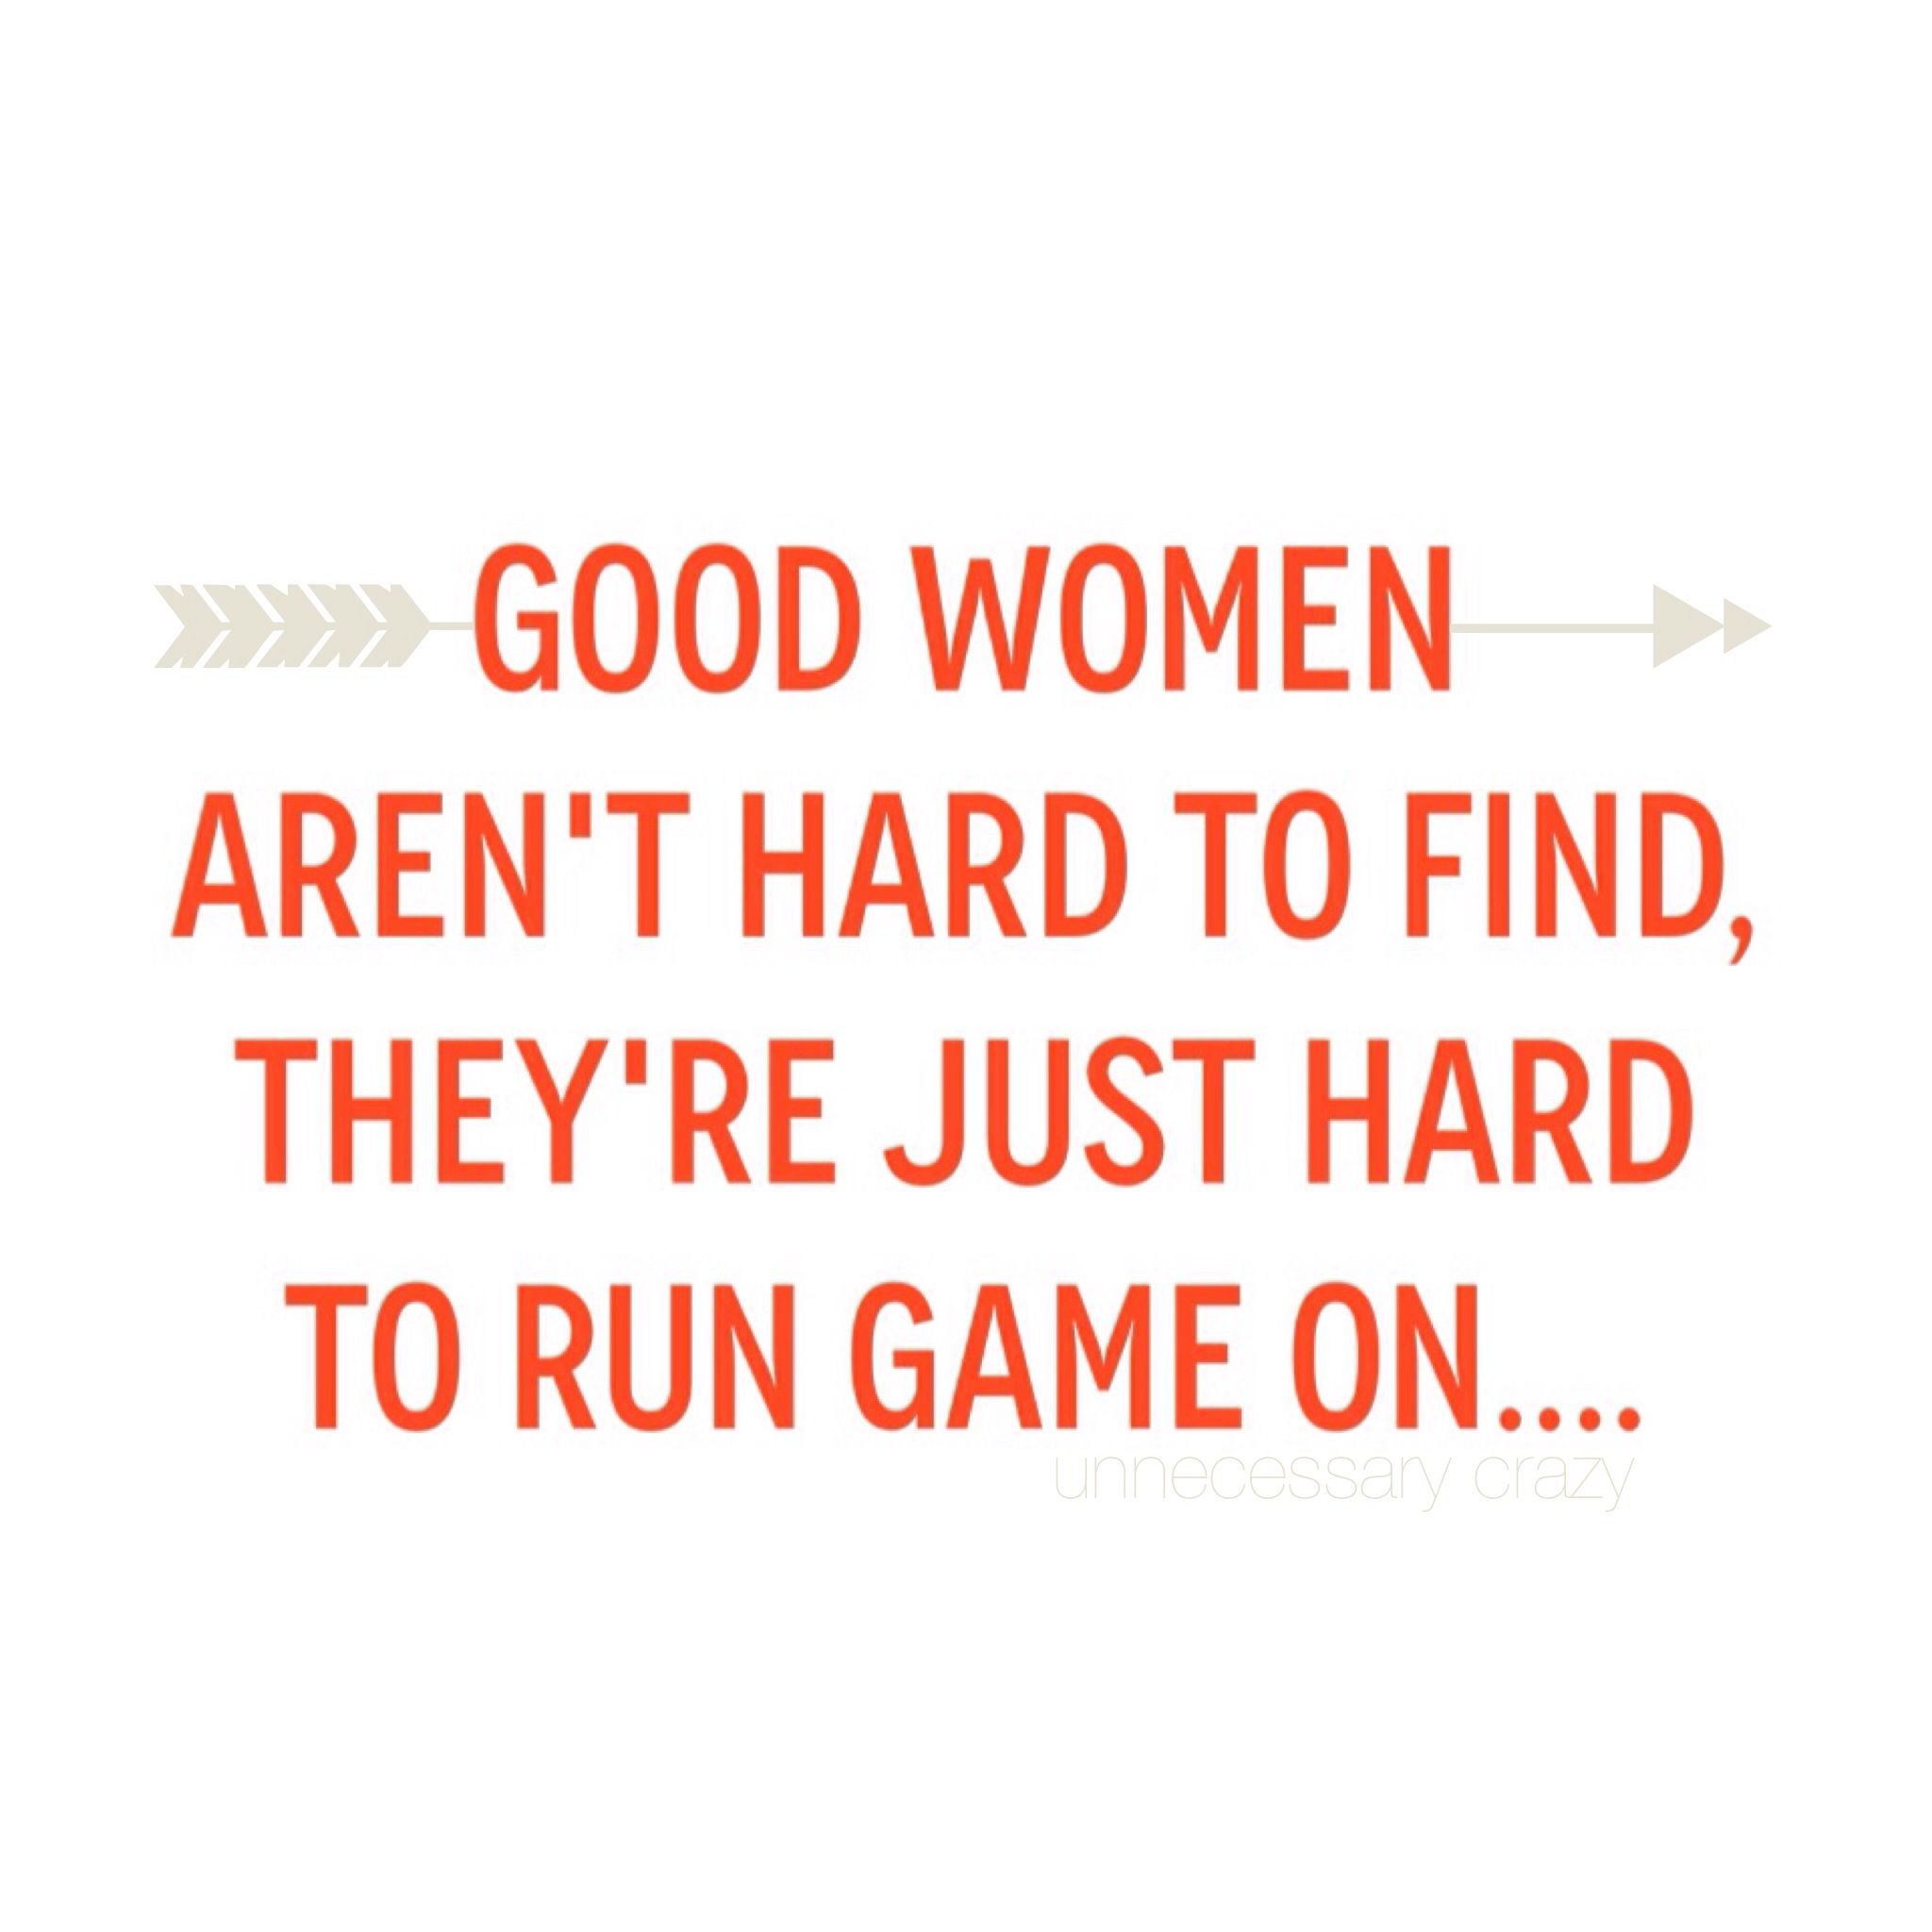 Good women aren't hard to find, they're just hard to run game on